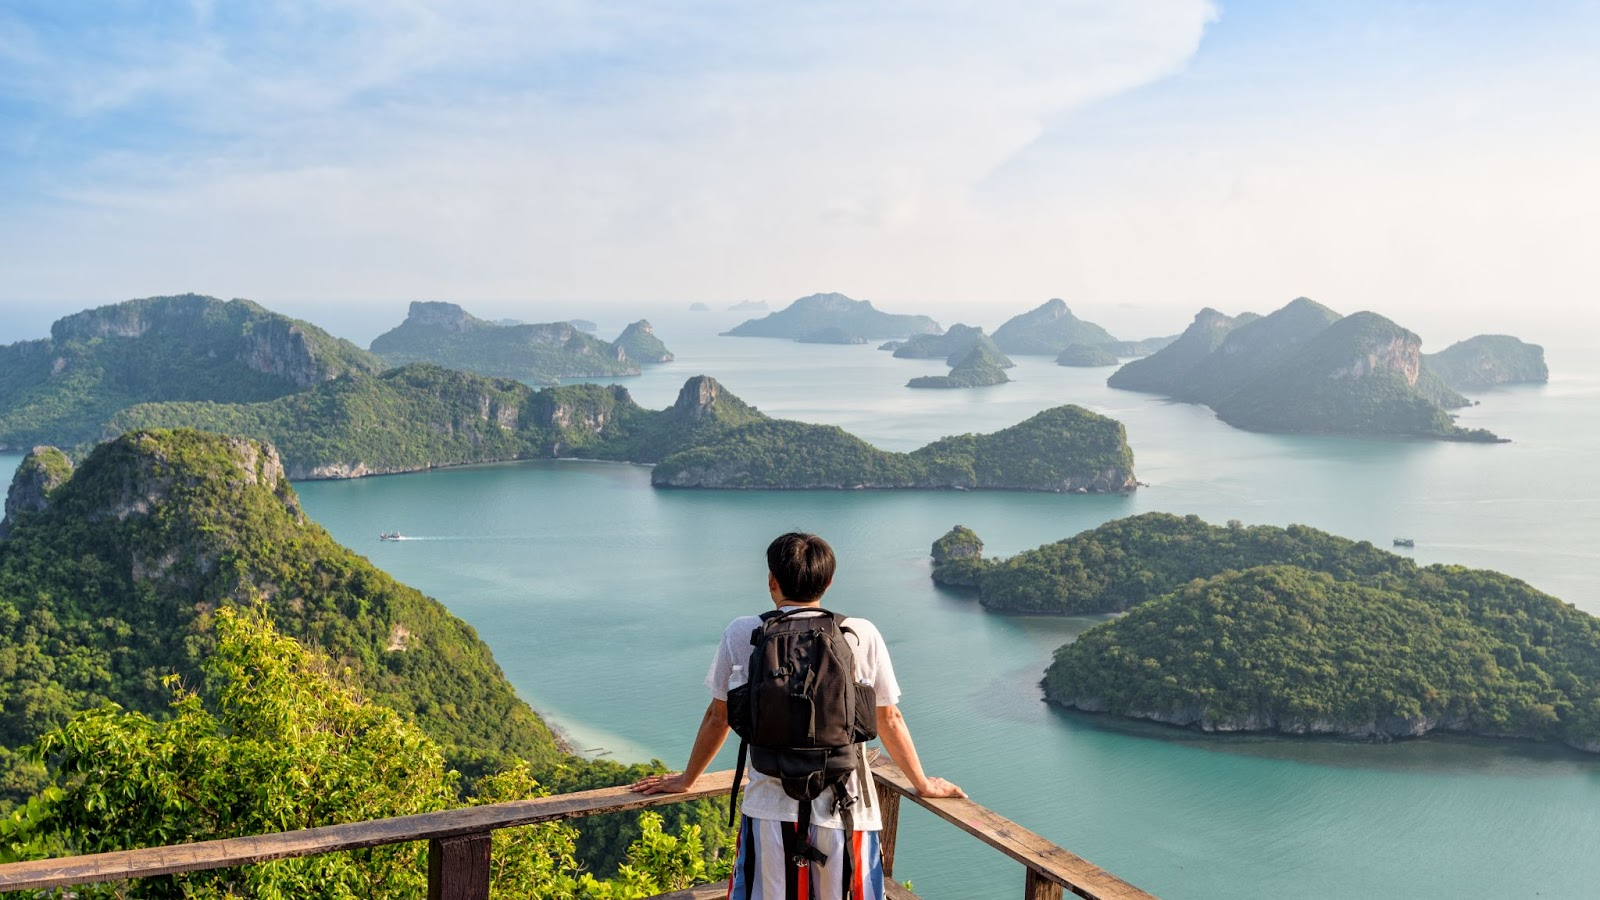 Unplugging from technology in Thailand while enjoying the scenery